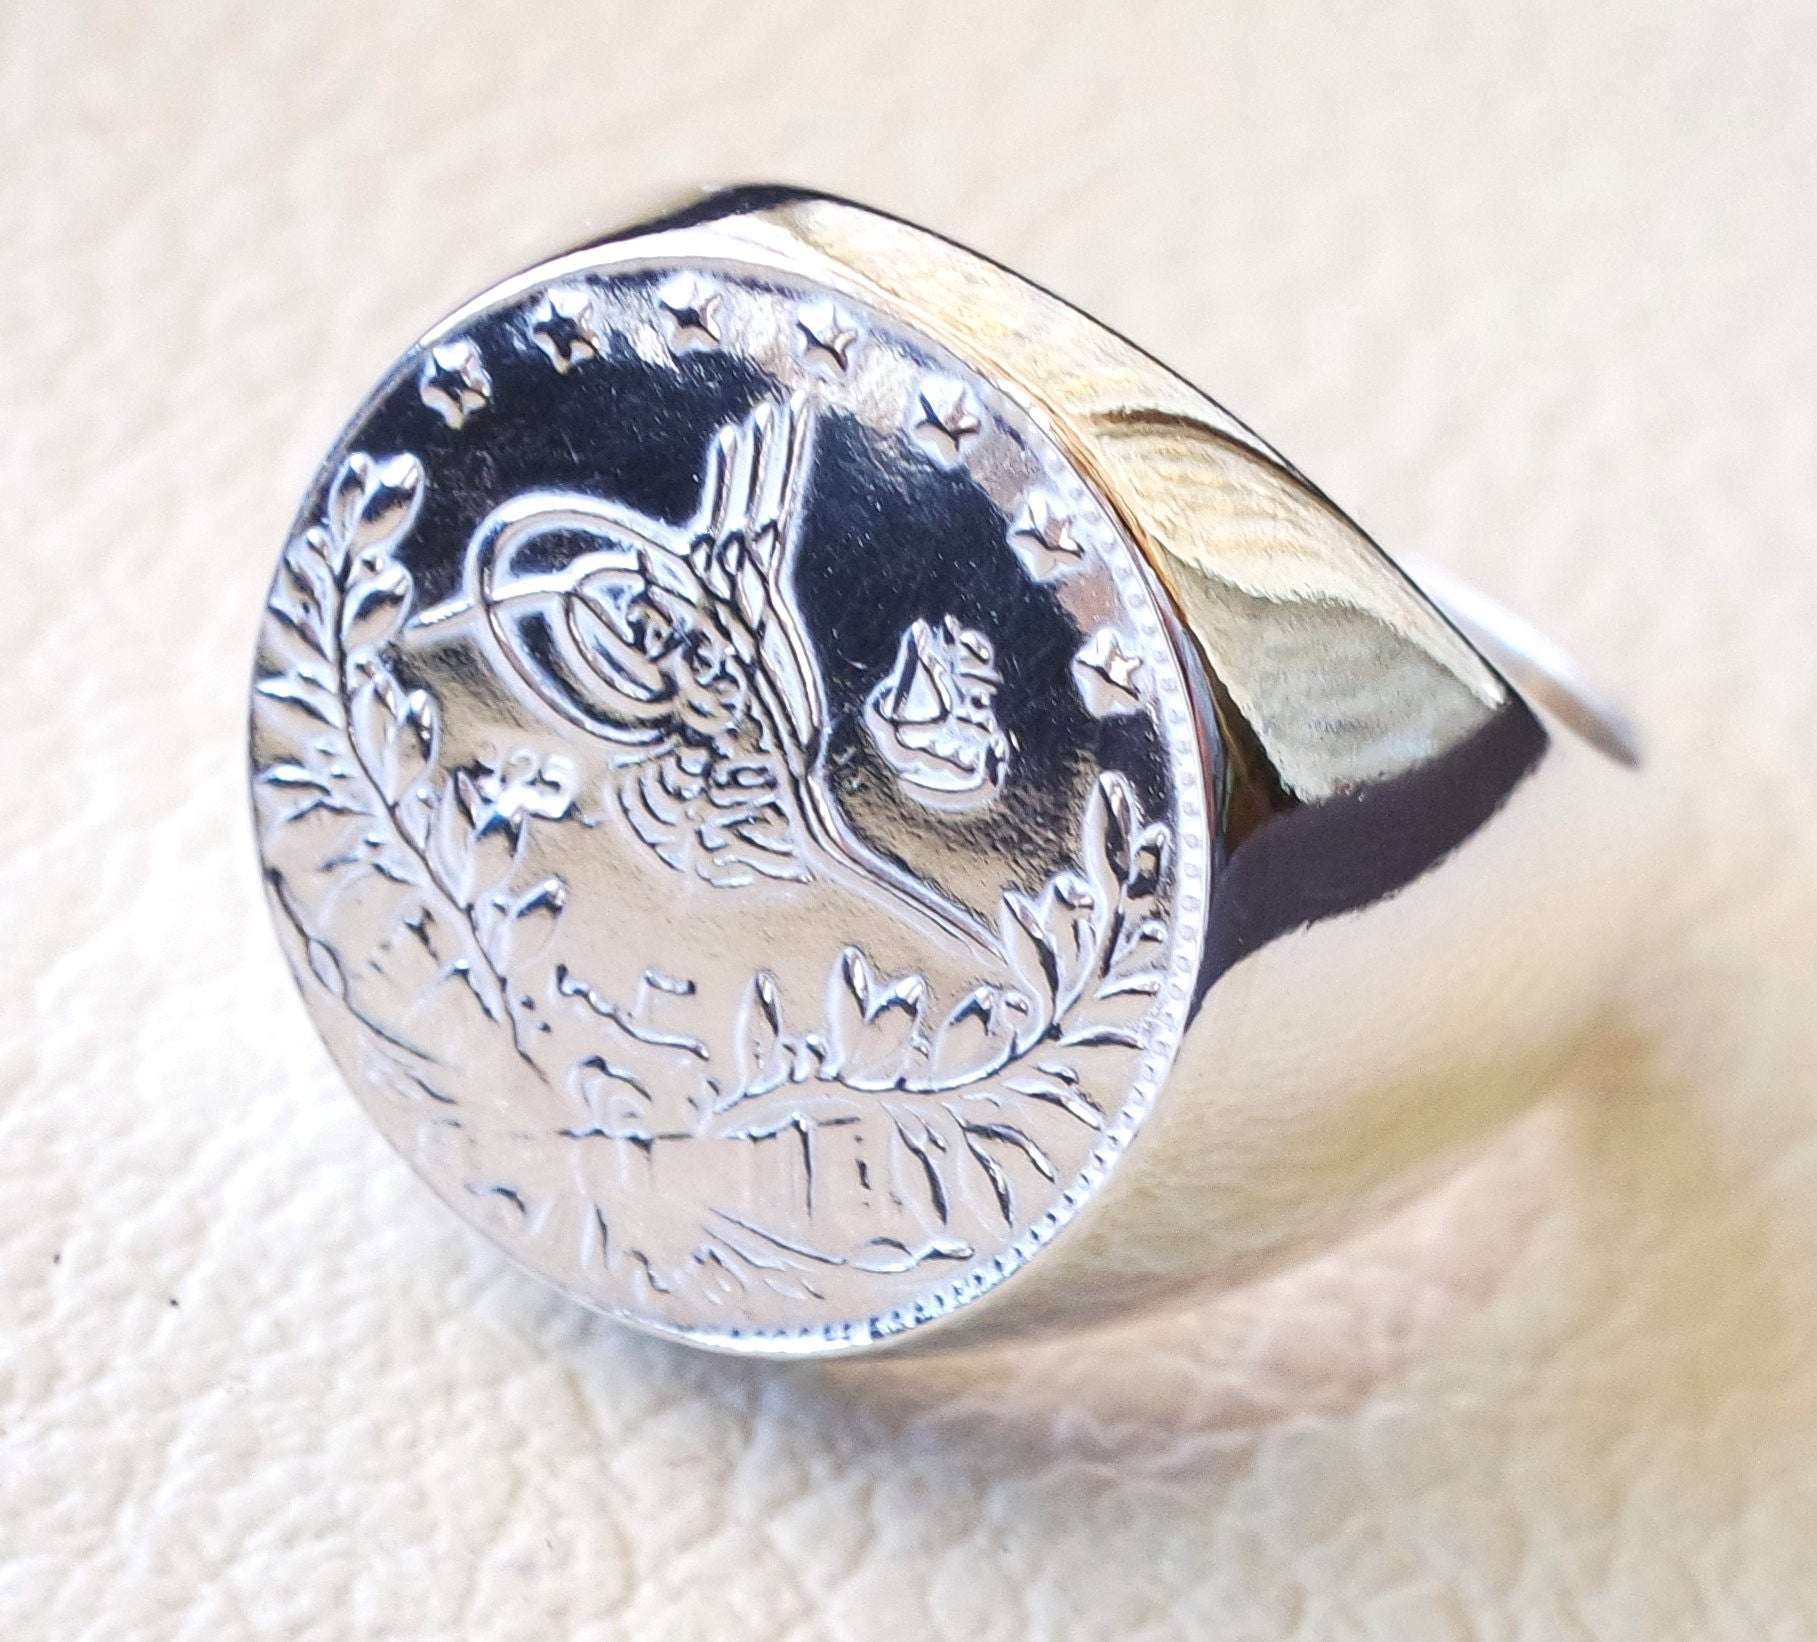 Rashadi silver coin heavy man ring round sterling silver 925 historical ottoman replica half coin size close back all sizes jewelry